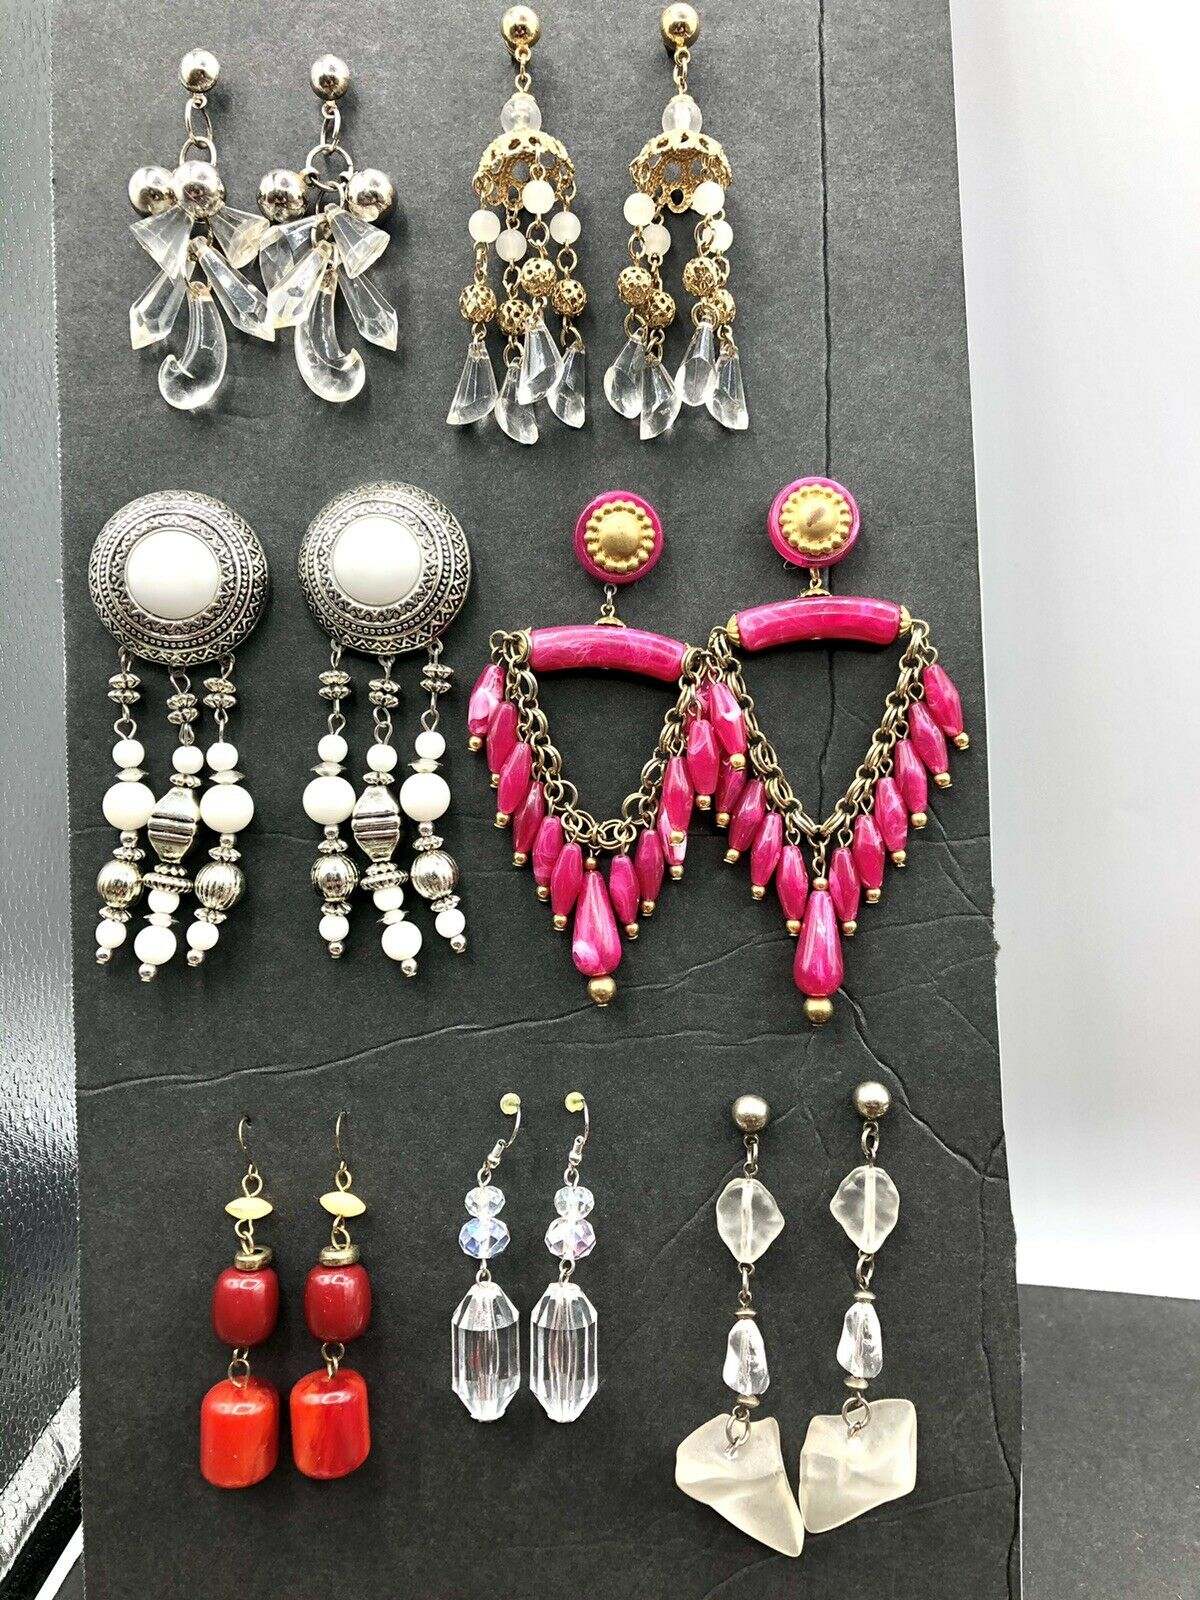 Wholesale Joblot New Look White Silver Ball Round Drop Earrings X 120 Pairs